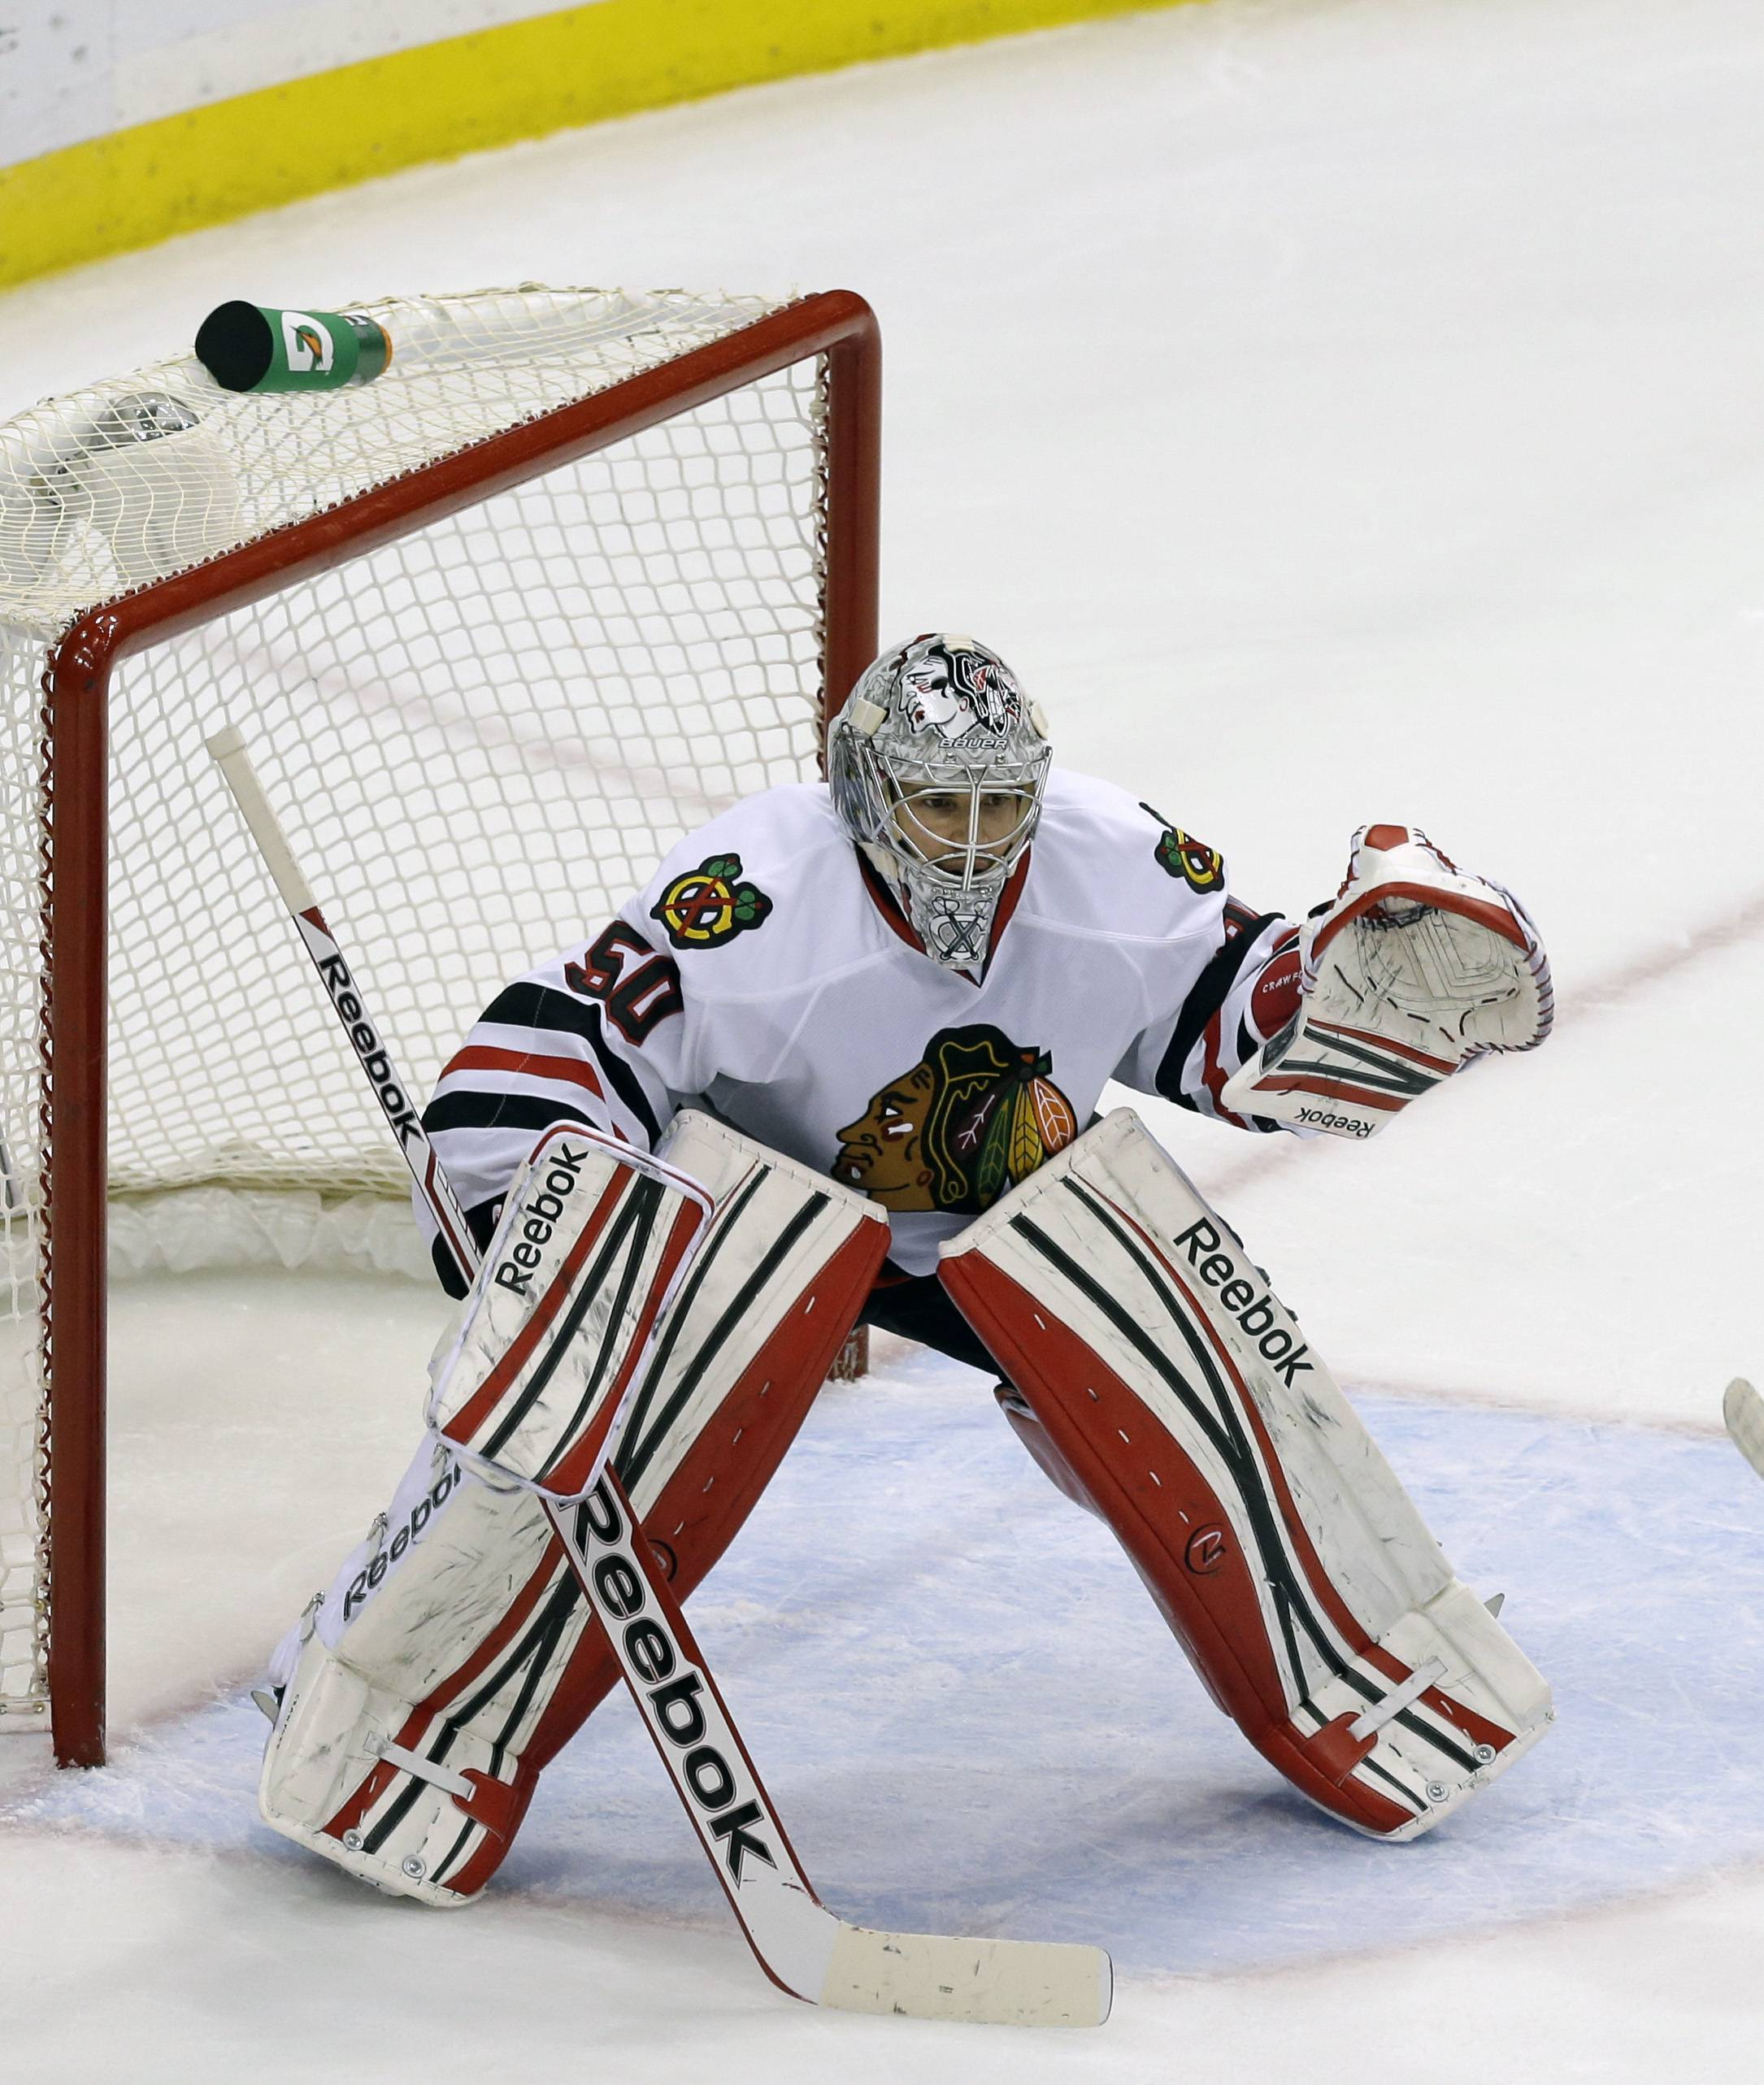 Chicago Blackhawks goalie Corey Crawford is shown in the second period of Game 4 of an NHL hockey Stanley Cup playoff series against the Minnesota Wild, Tuesday, May 7, 2013 in St. Paul, Minn. The Blackhawks won 3-0.